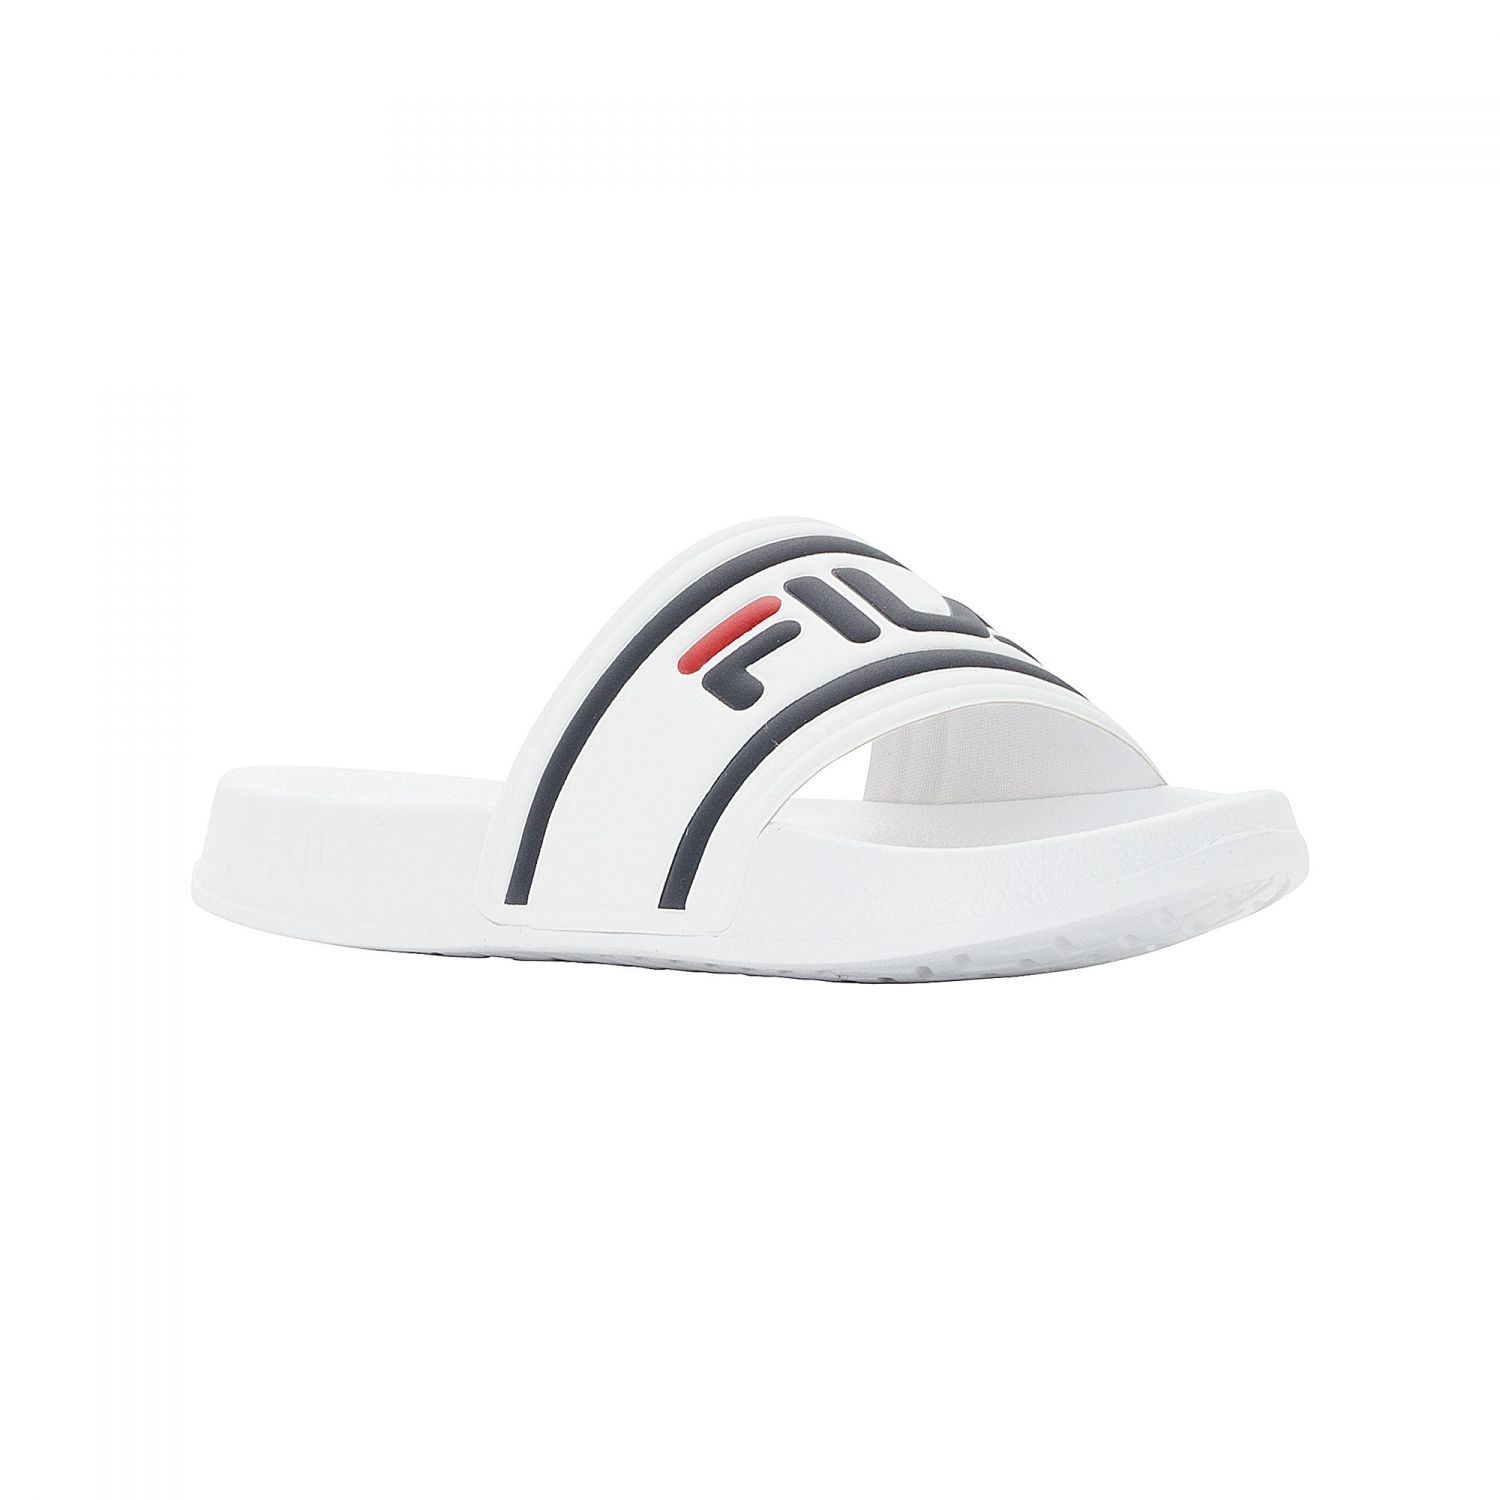 4a2d6dd63 Fila - Morro Bay Slipper Wmn white - 00014201714404 ...